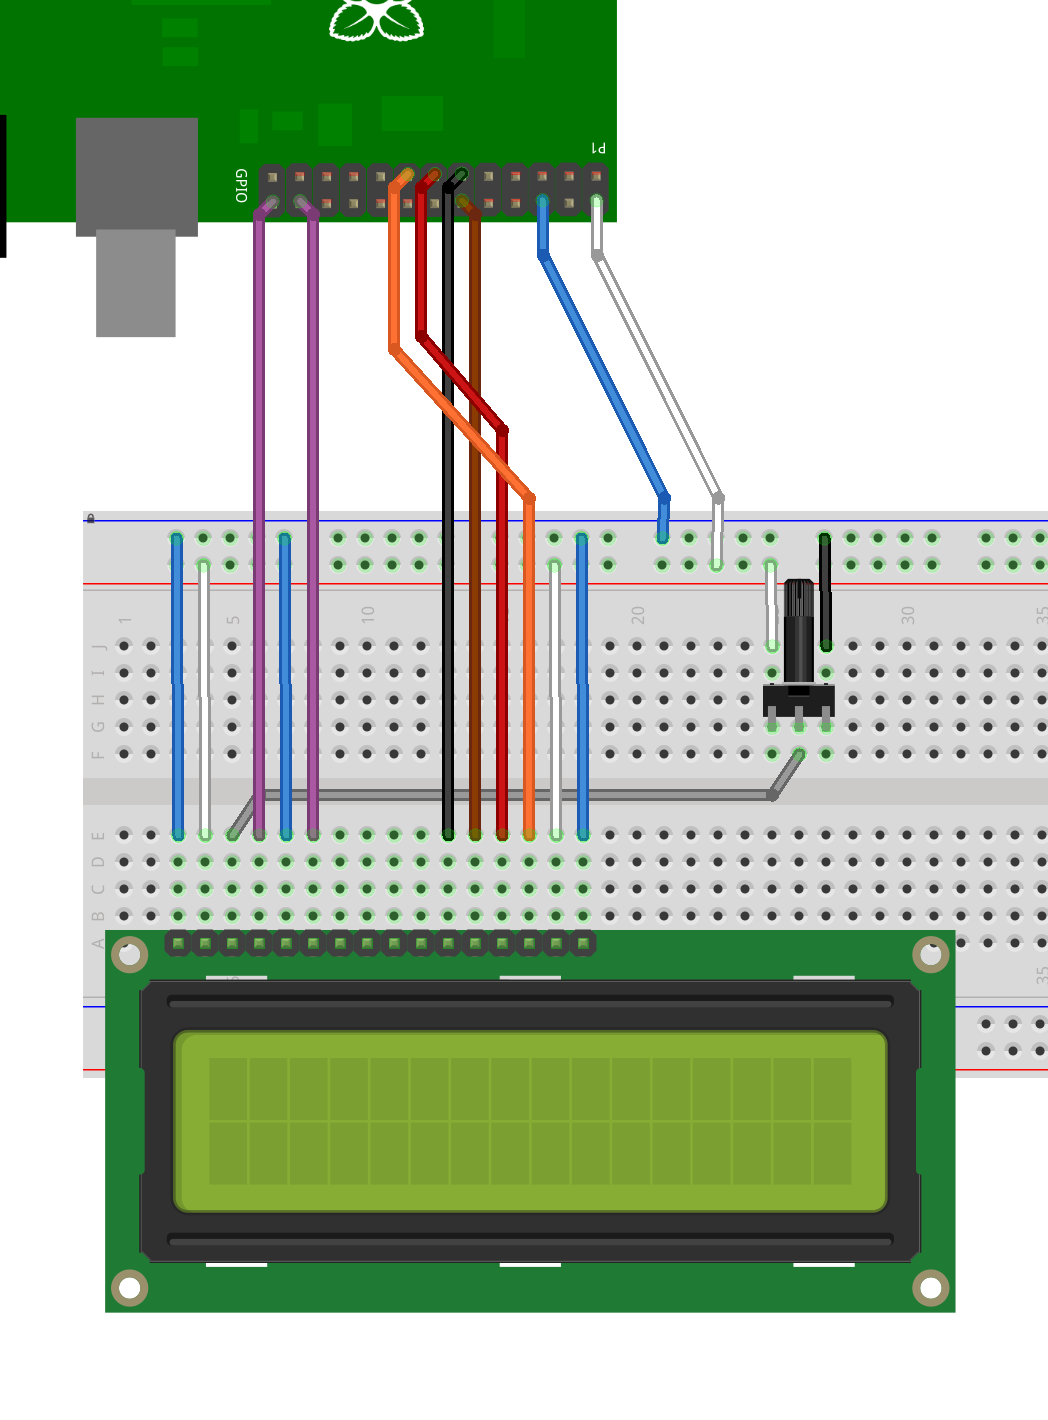 LCD Connected to Pi in 4-bit mode